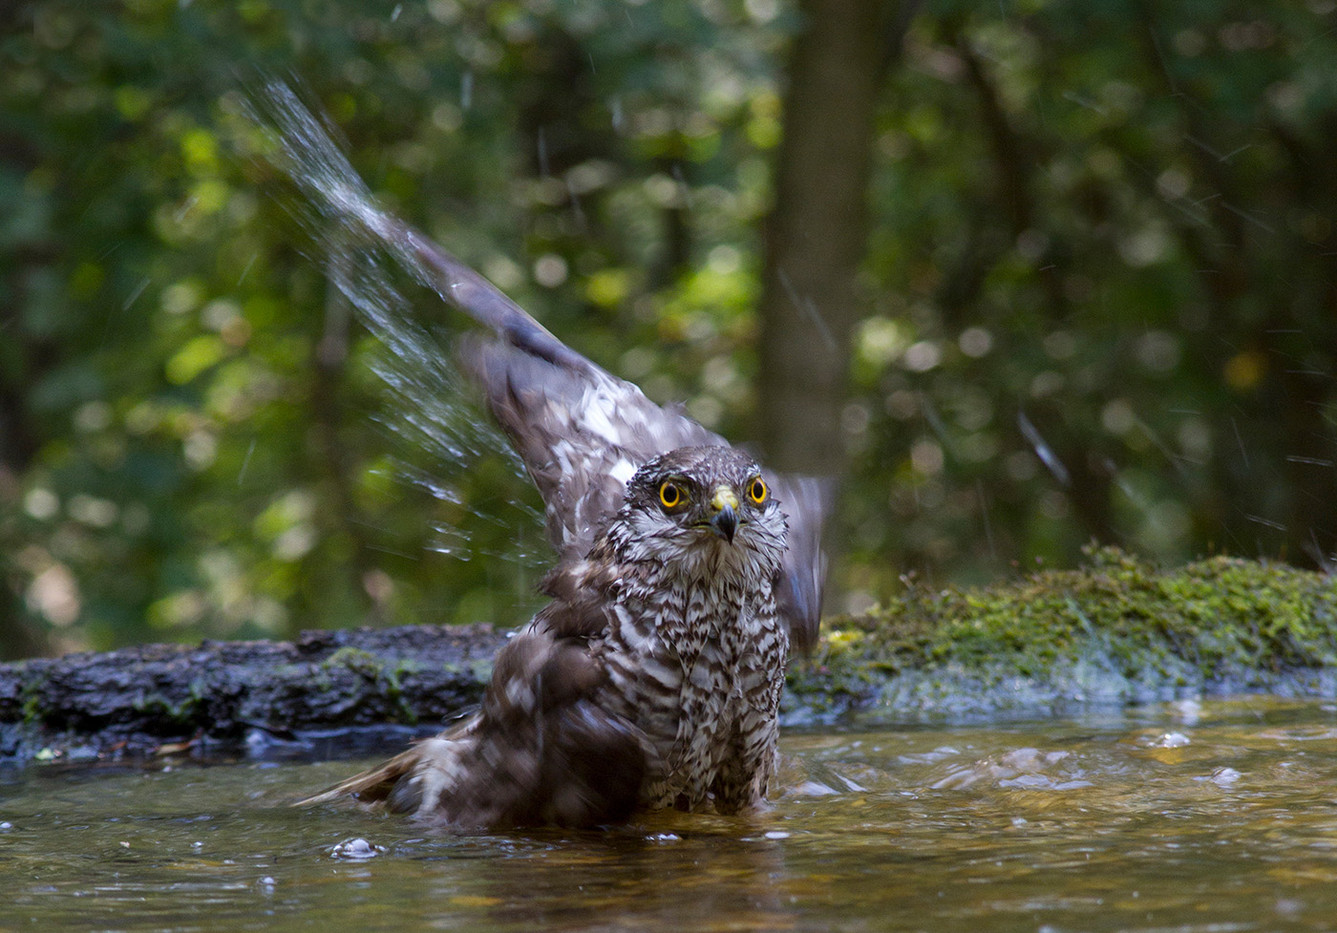 GROUP 1 19 SPARROWHAWK TAKING A BATH by John Hunt